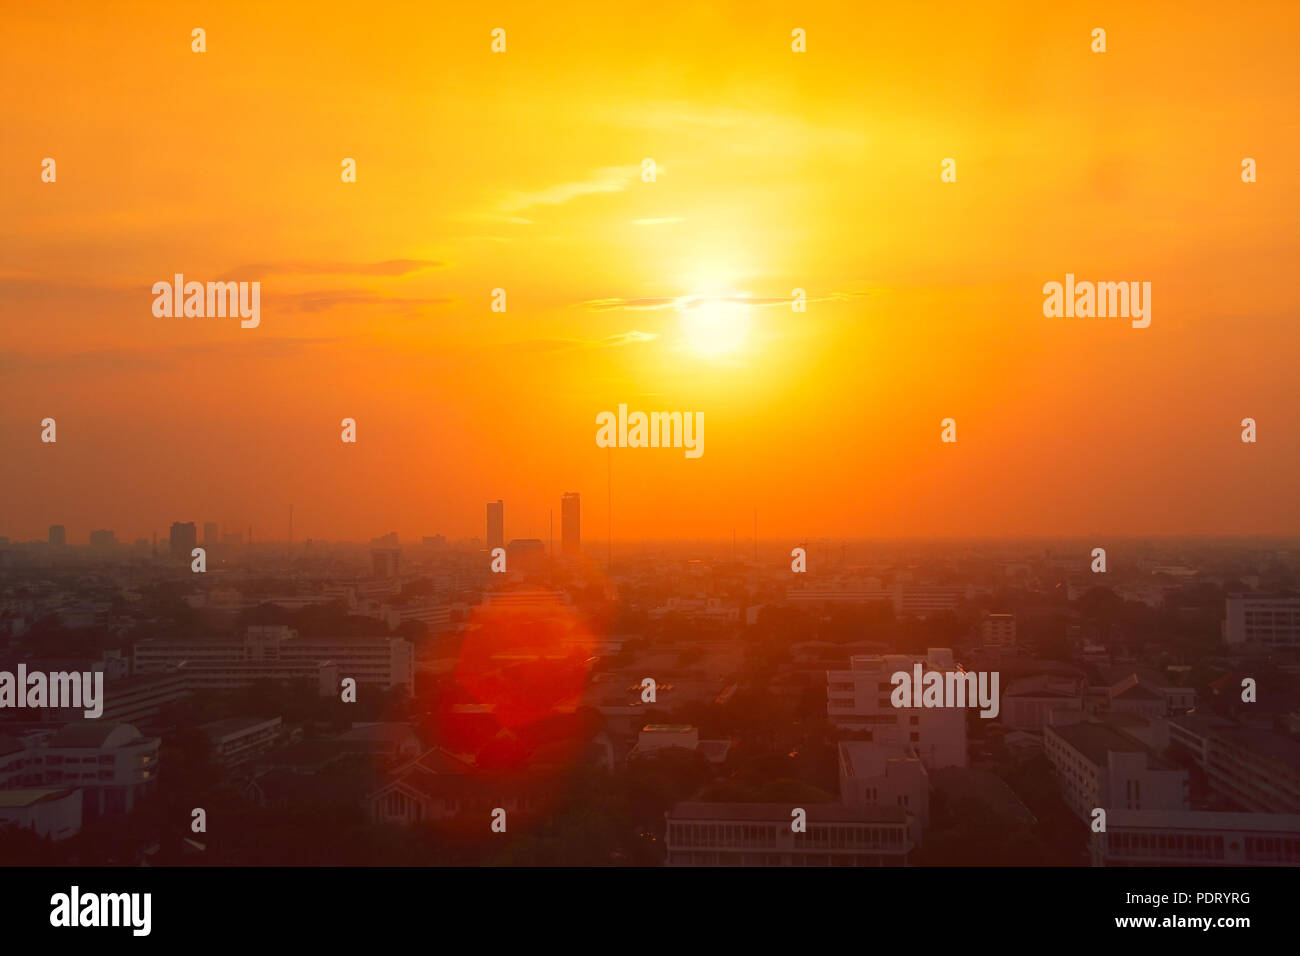 Thailand city view in heatwave summer season high temperature from global warming effect - Stock Image